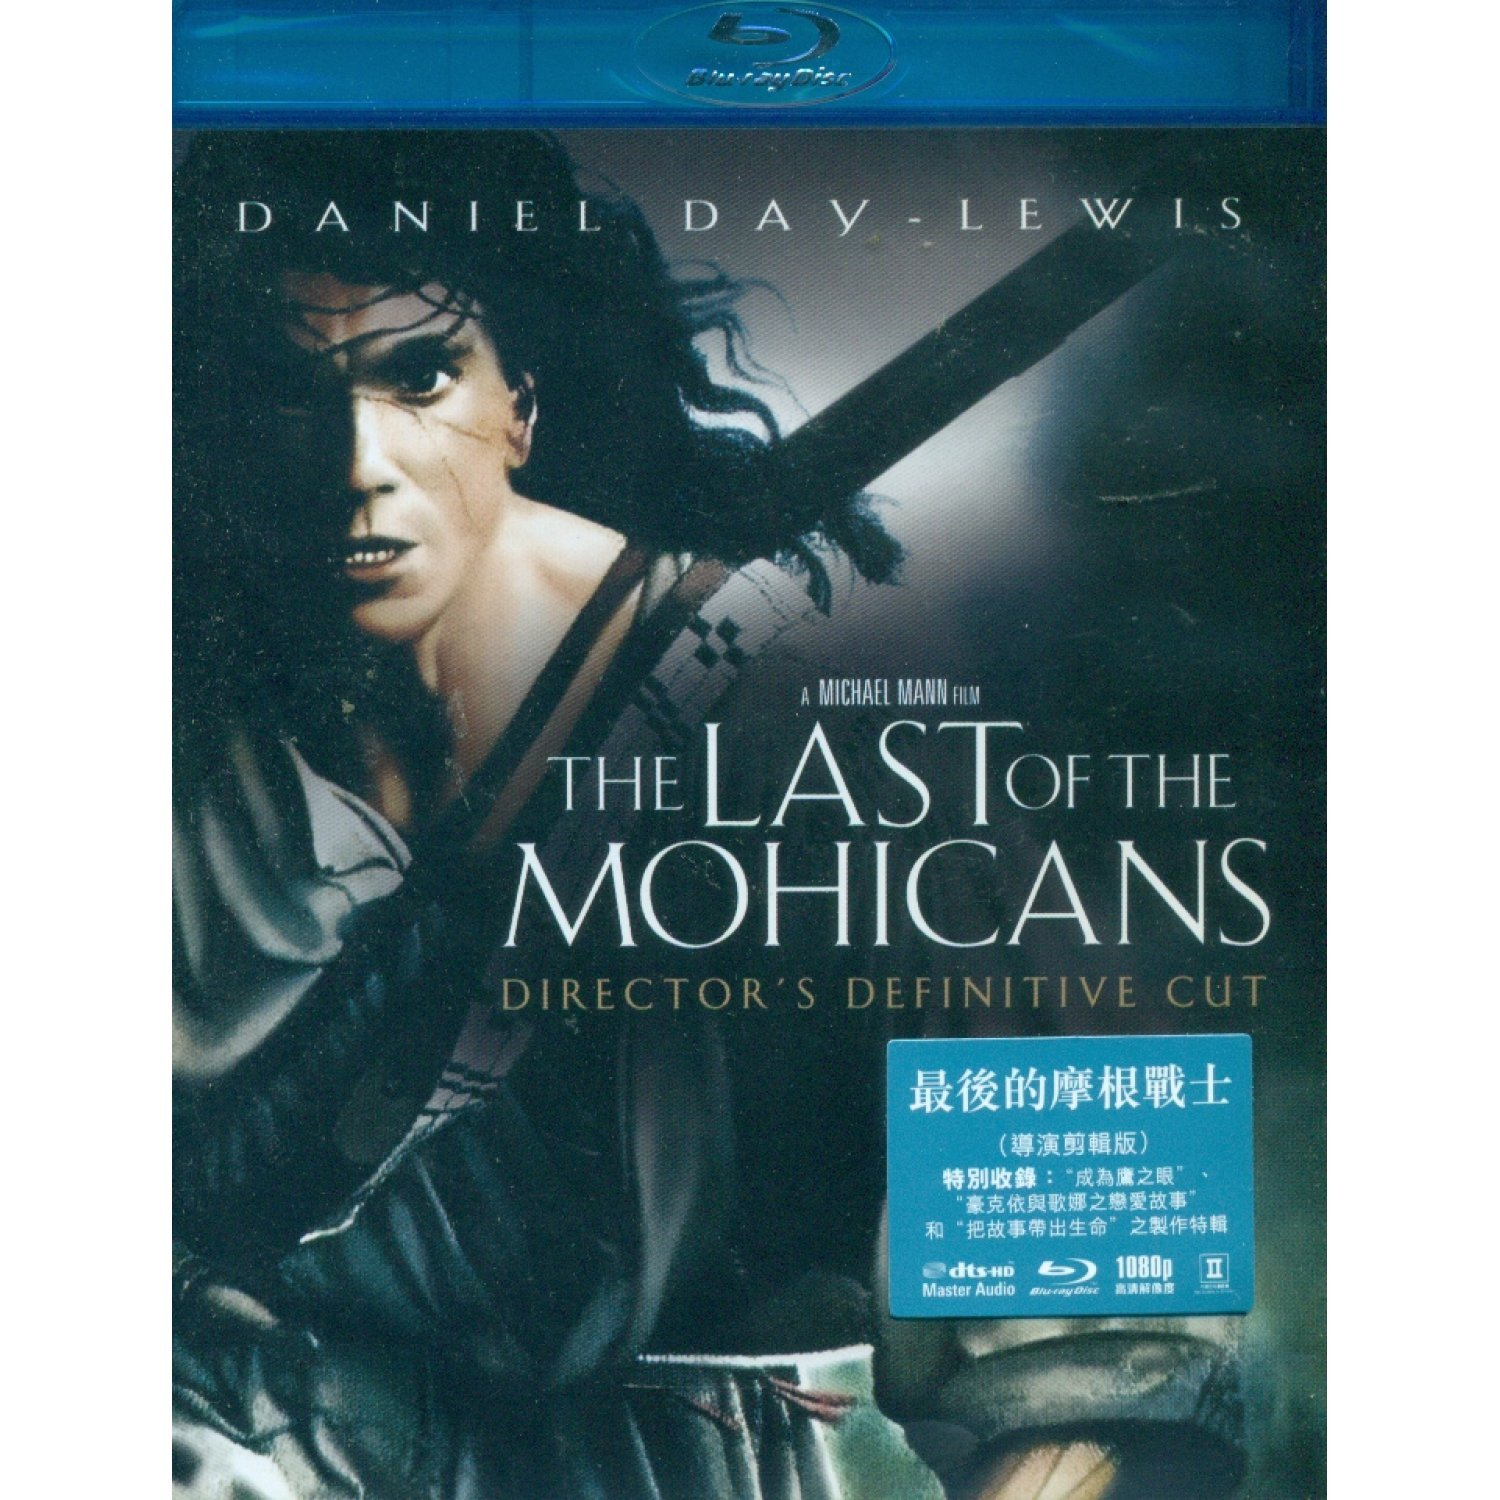 last of the mohicans authenticity The series was filmed almost entirely in canada from 1957 to 1958 utilizing authentic outdoor settings hawkeye and the last of the mohicans - tv western.